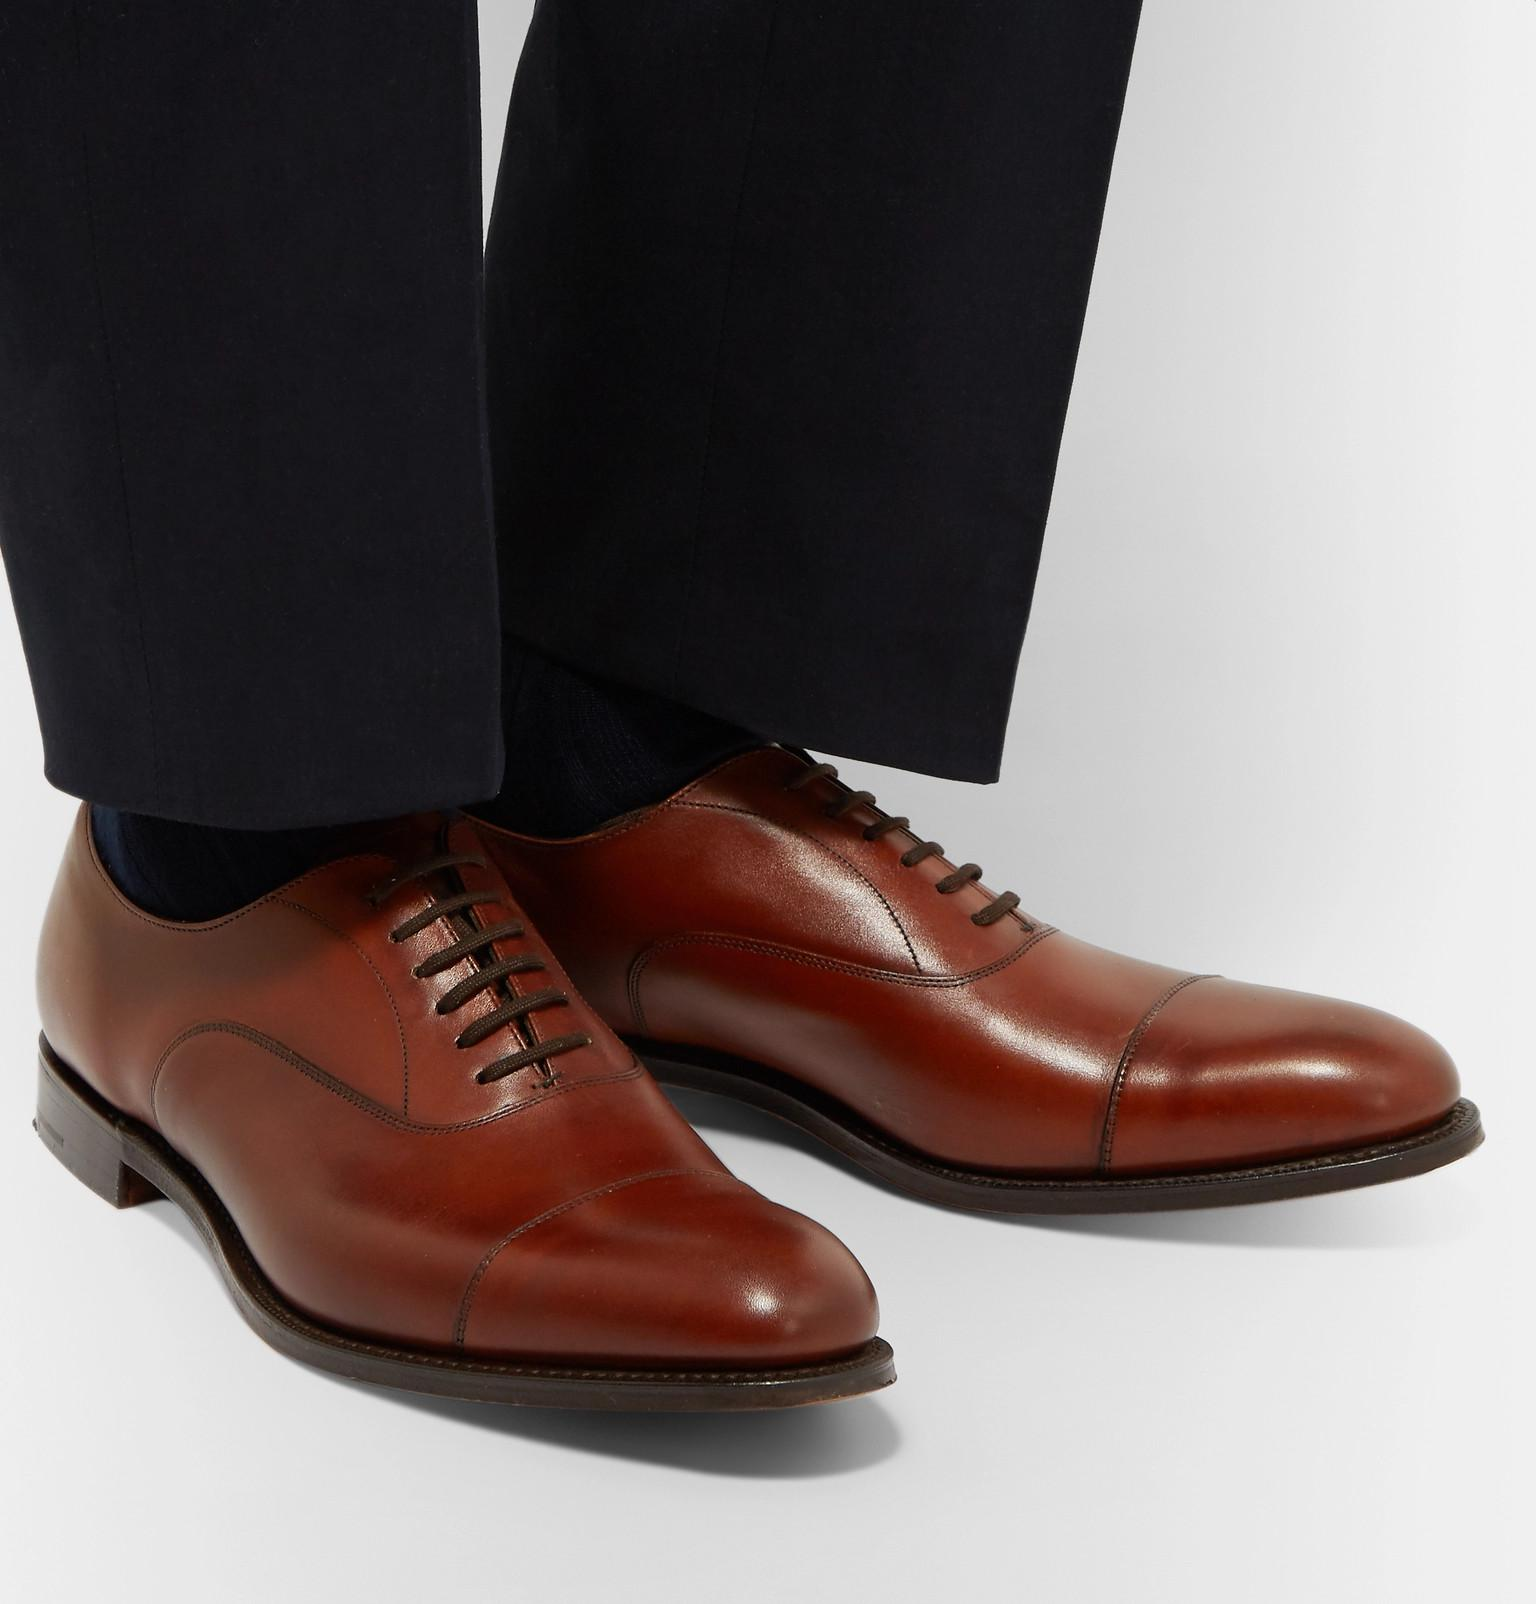 f60394c21ffb Lyst - Church S Dubai Polished-leather Oxford Shoes in Brown for Men